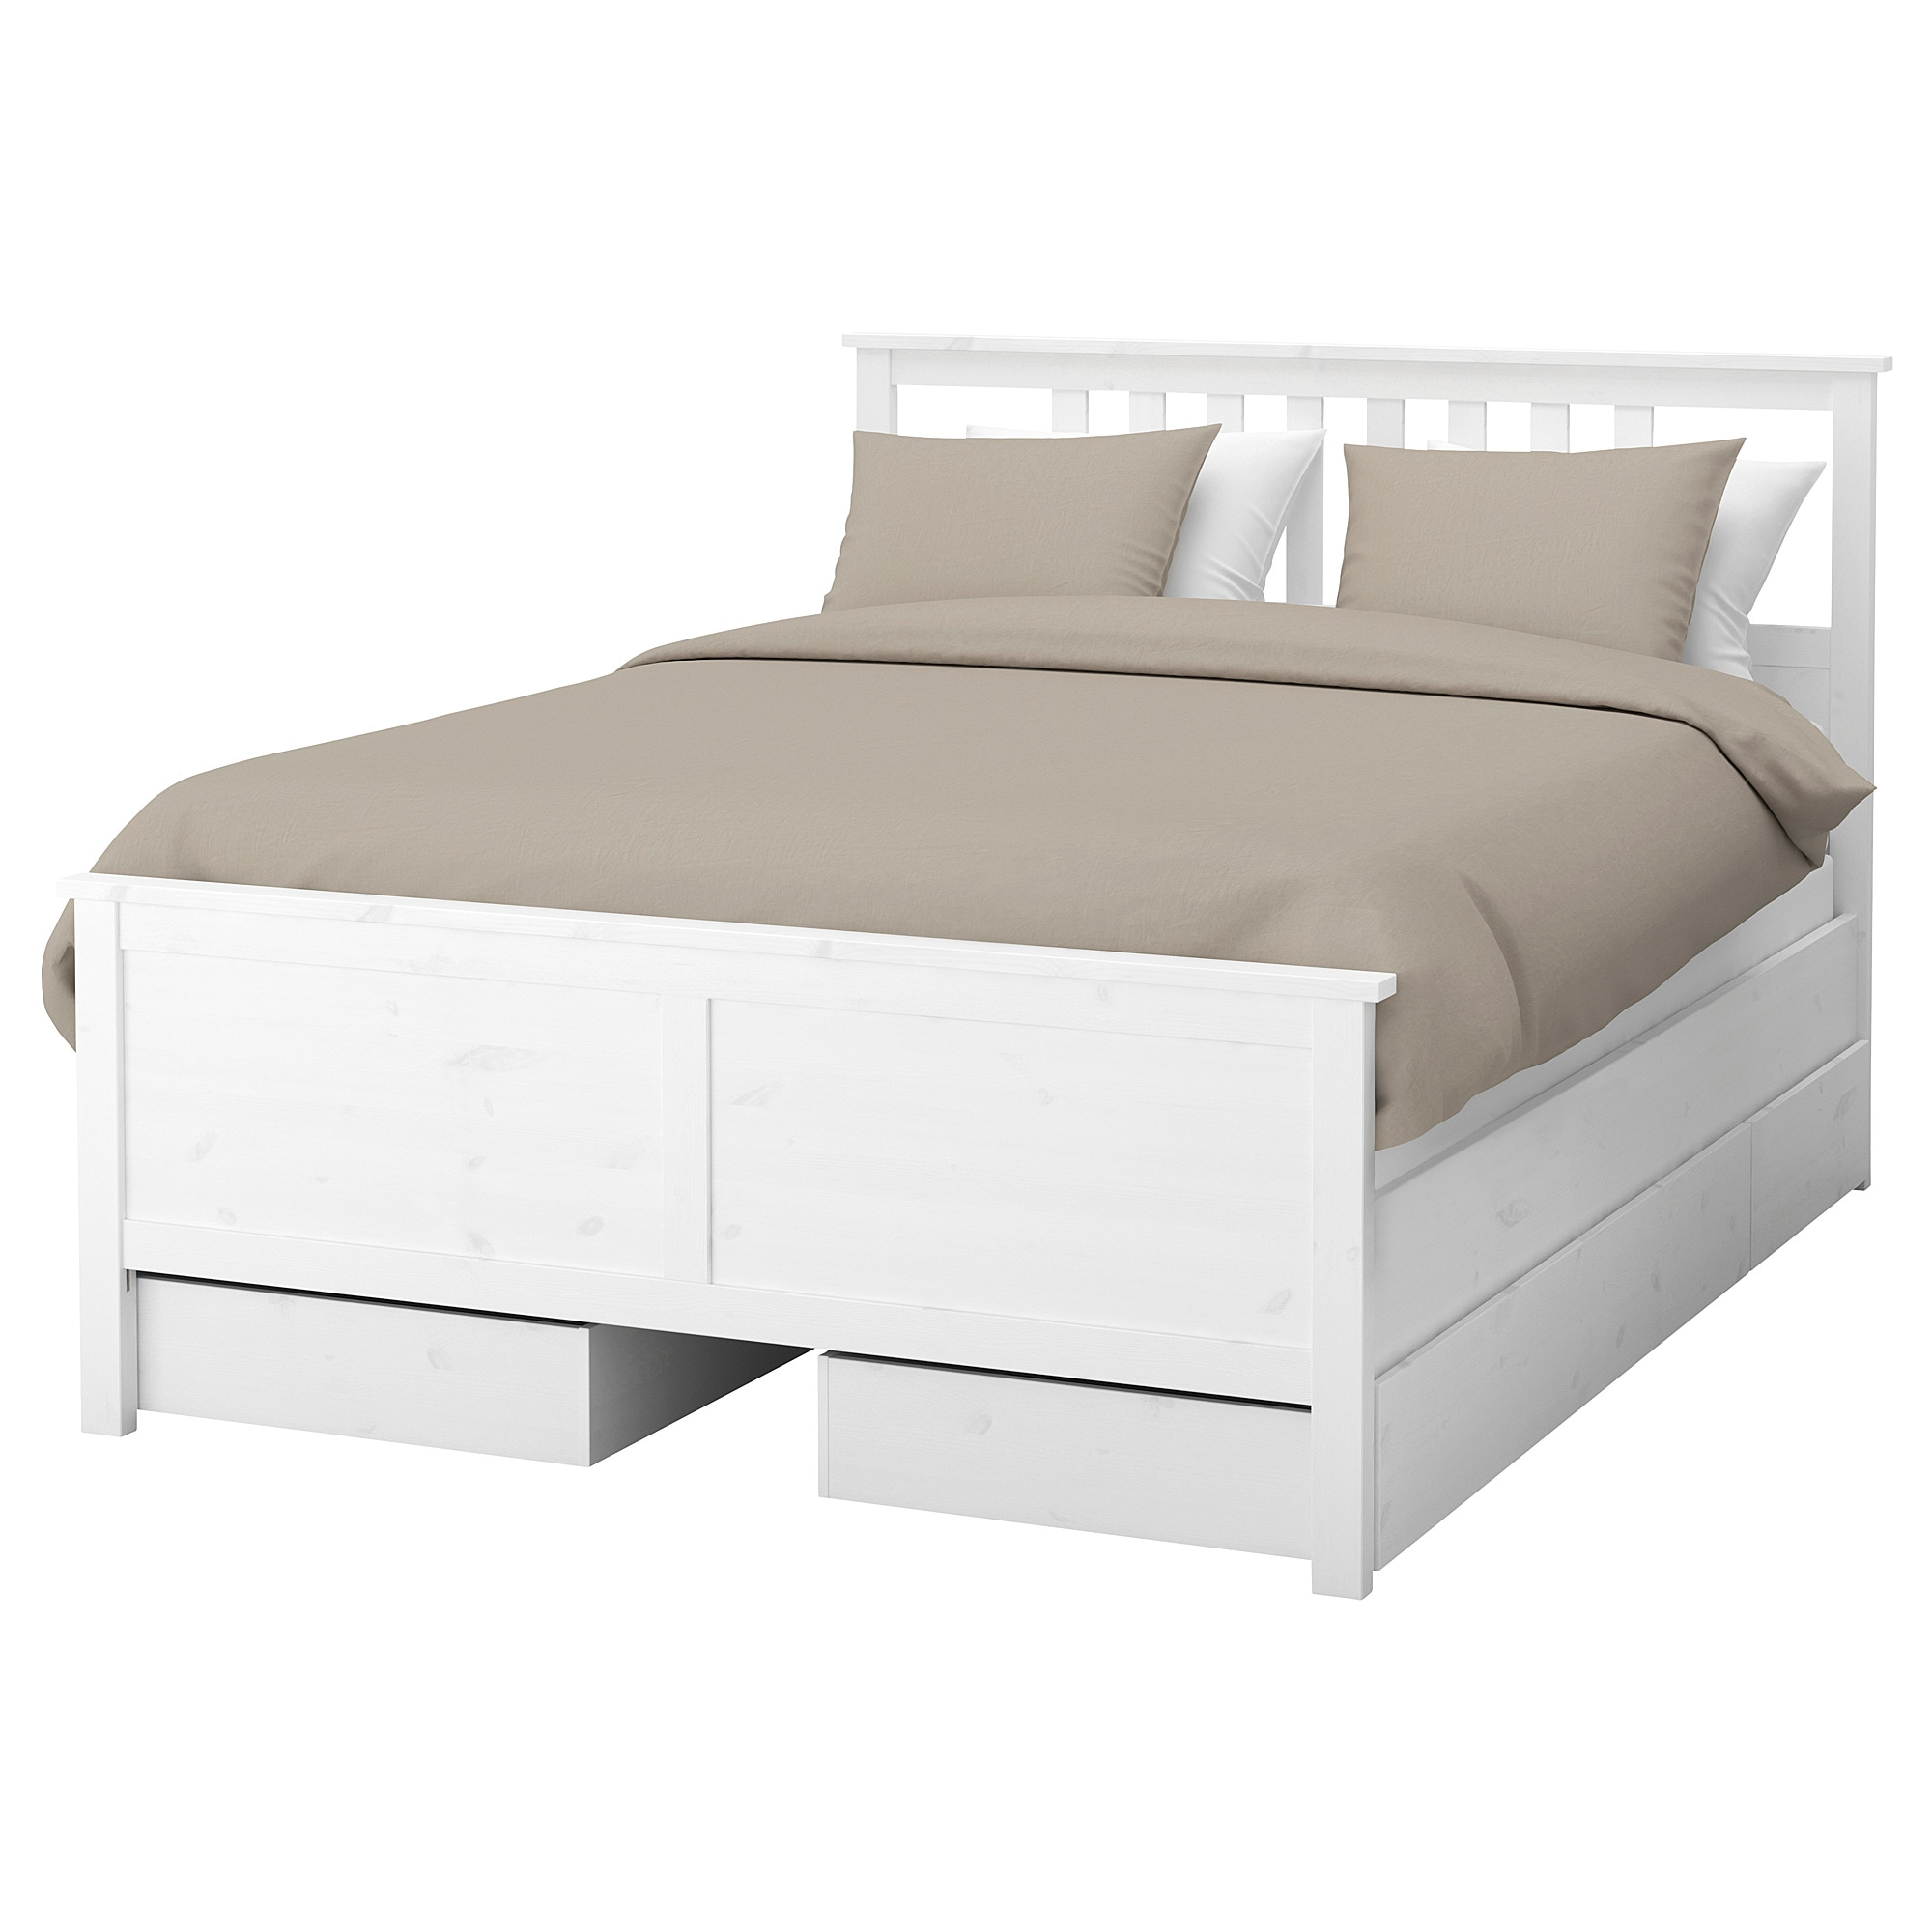 HEMNES Bed frame with 4 storage boxes King Leirsund slatted bed